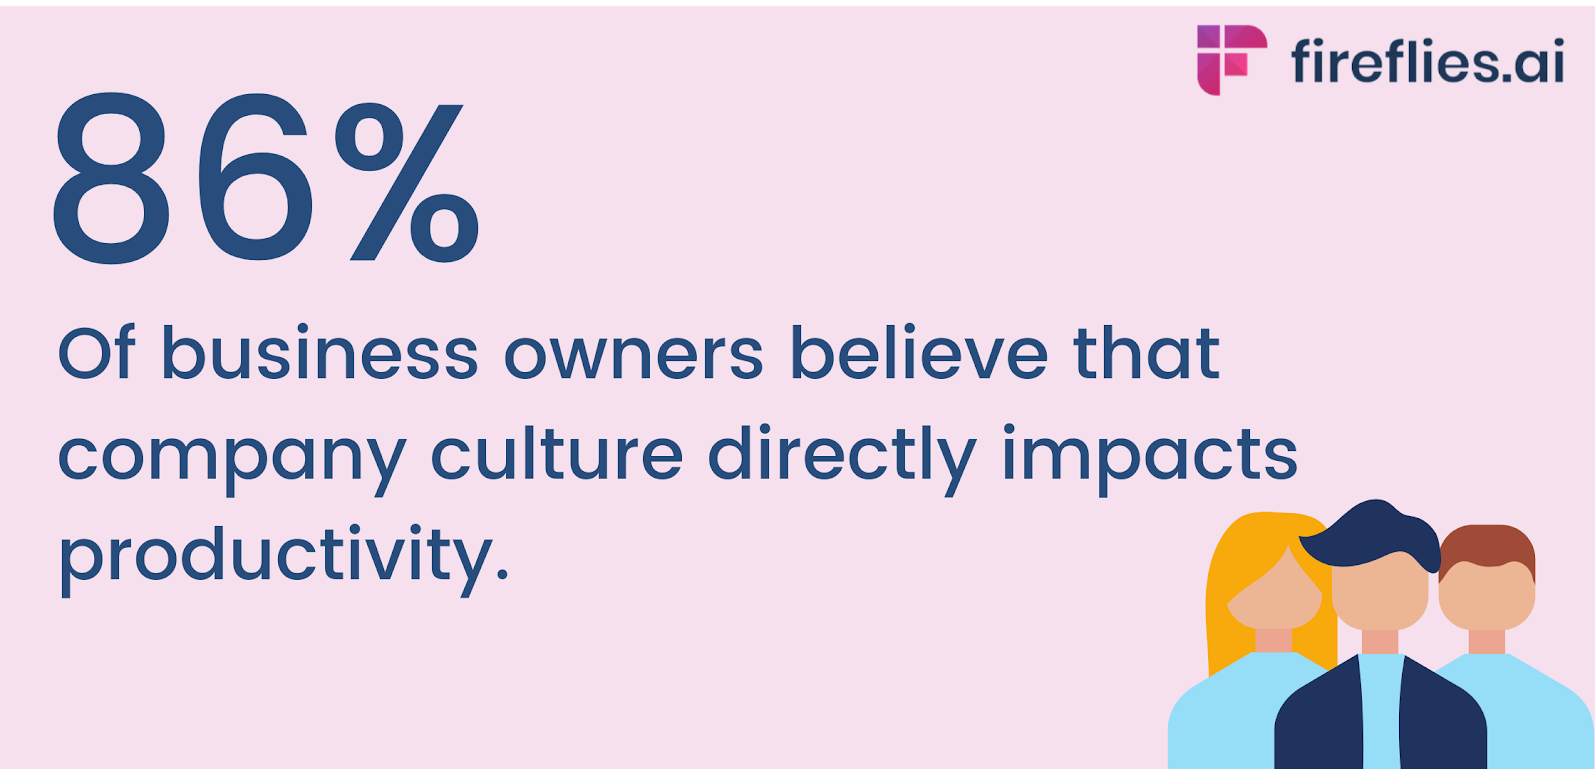 86% of the business owners believe that organizational cutlure is so important that it directly impacts productivity